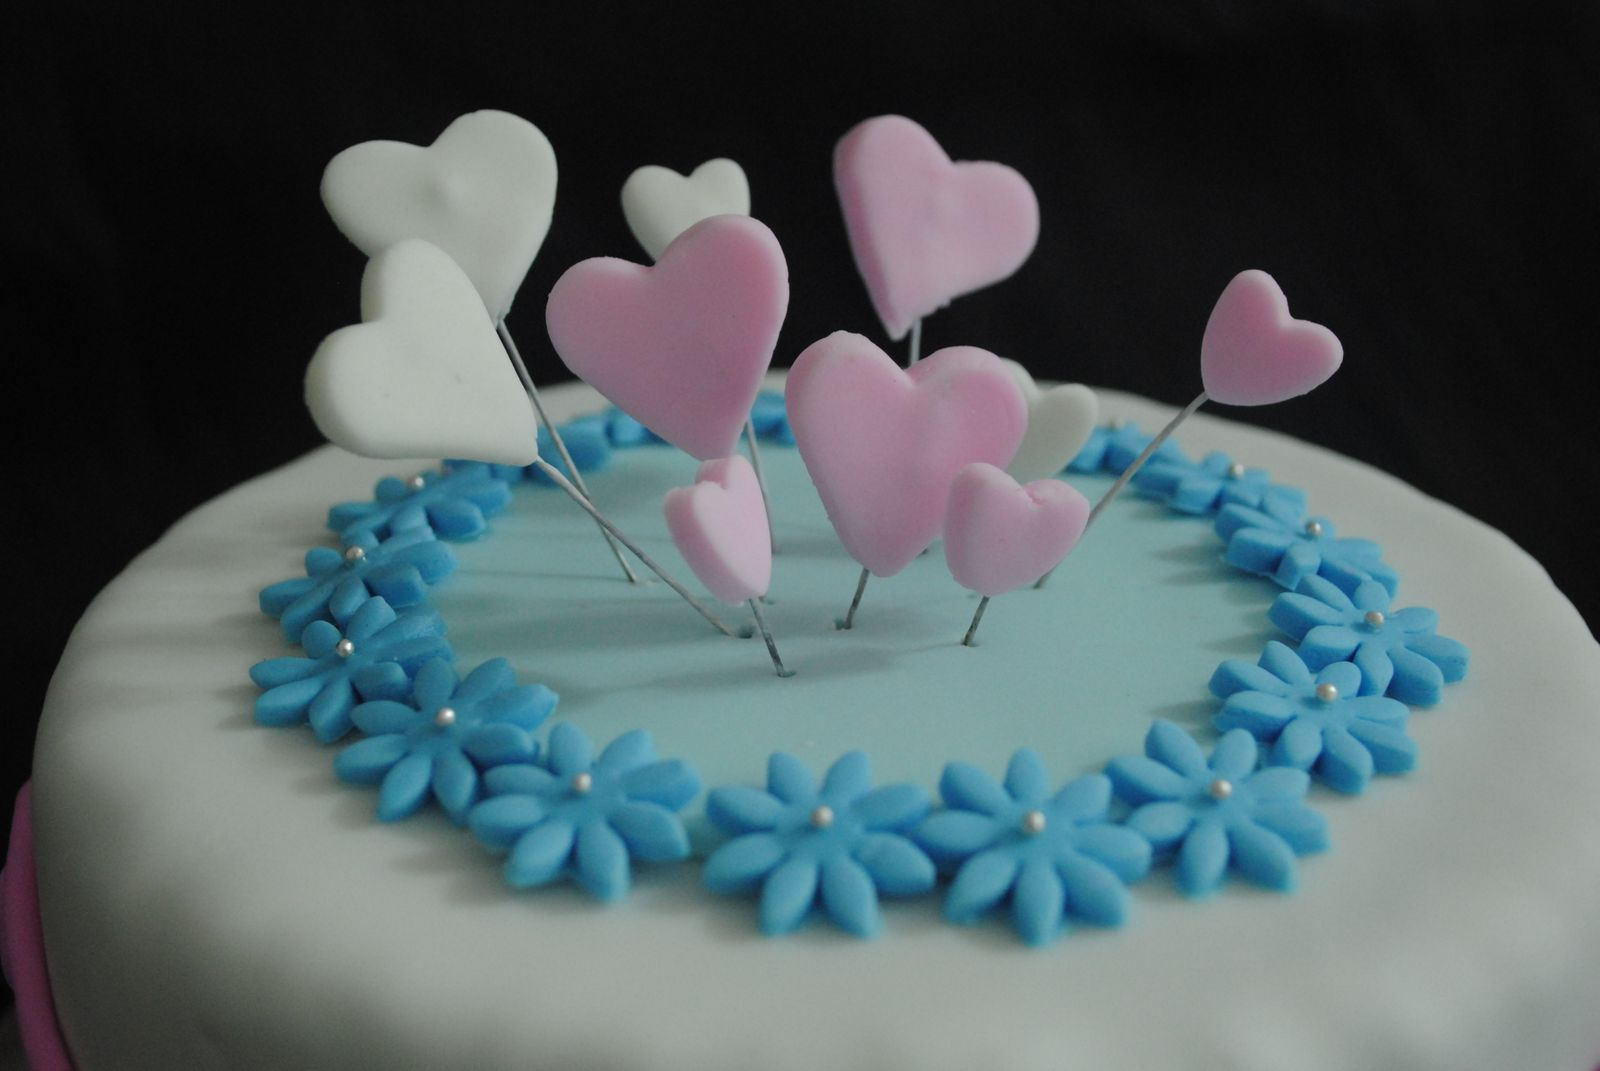 Birthday Cakes For My Boyfriend Image Inspiration of Cake and